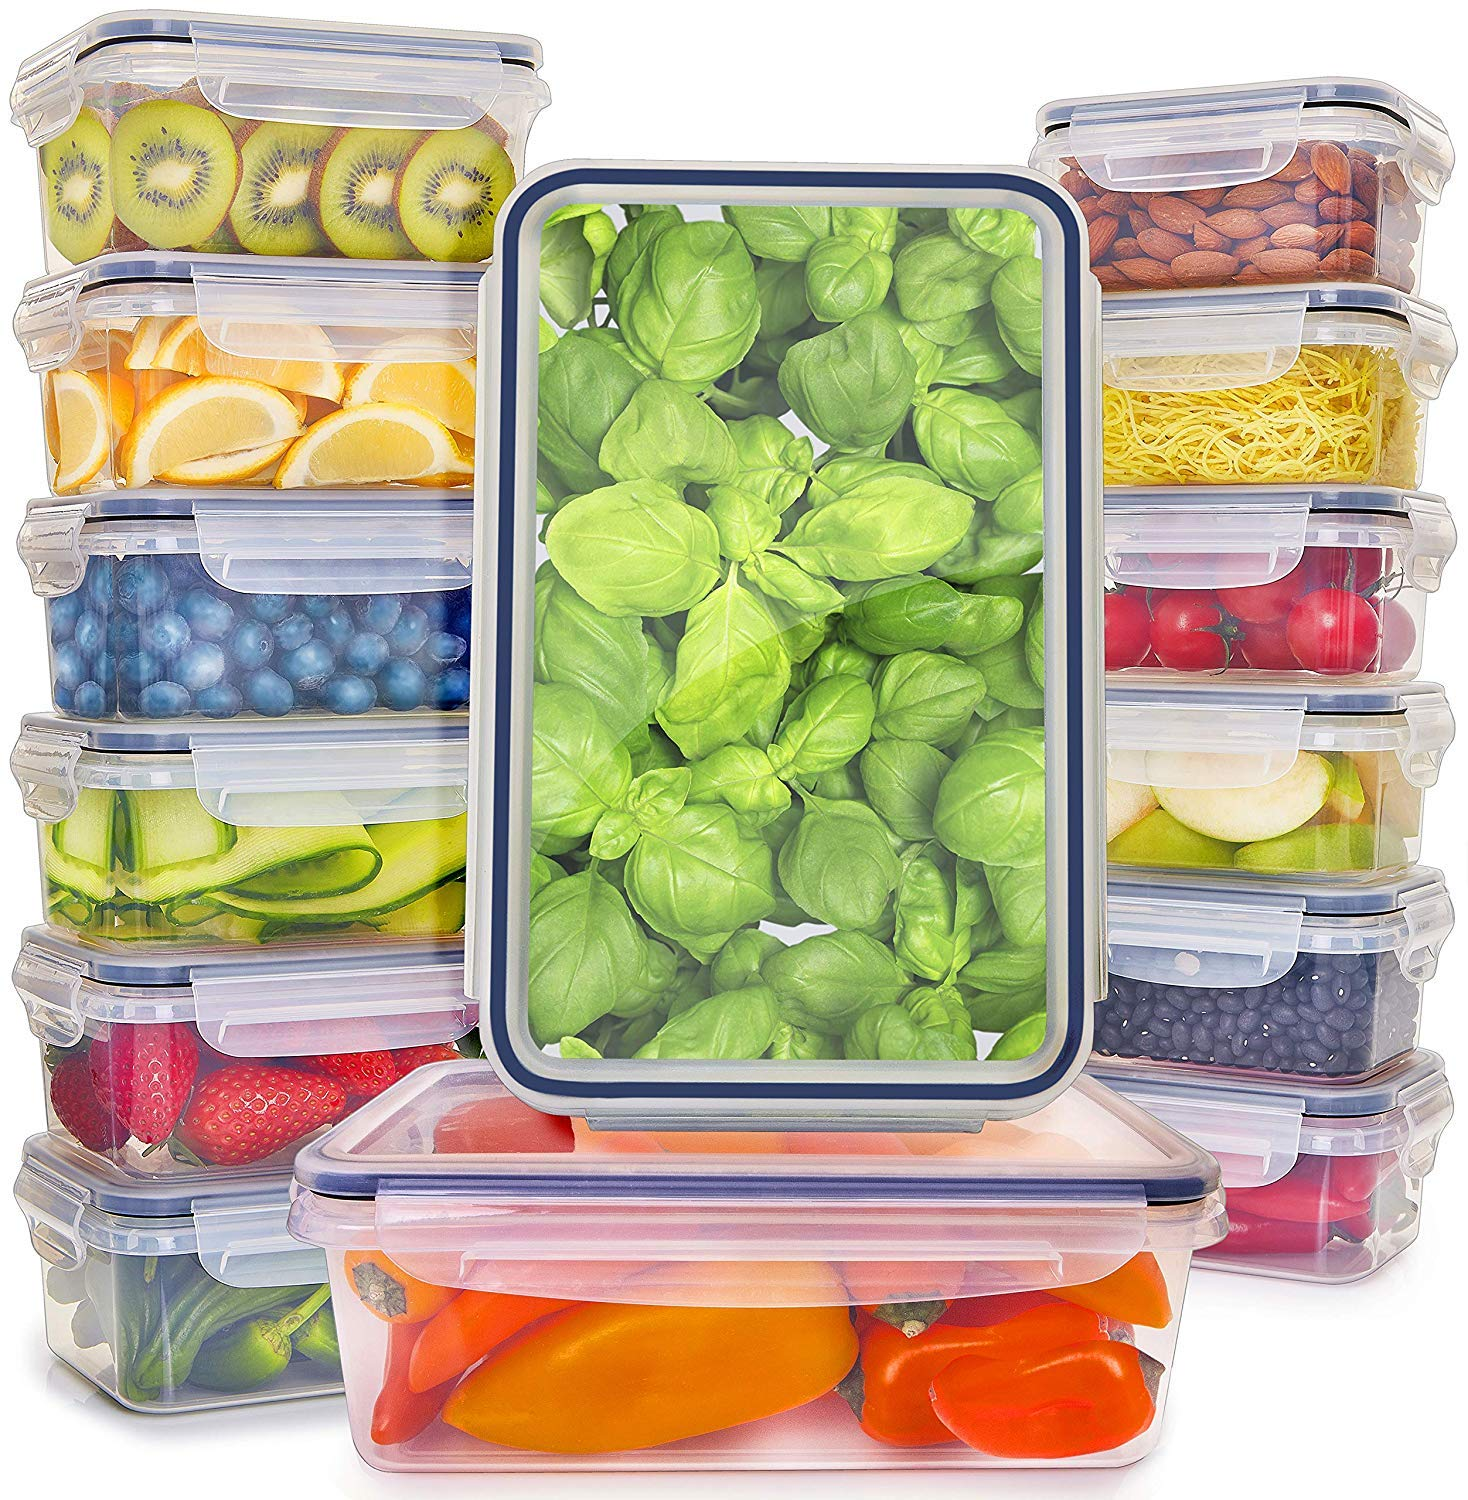 Fullstar-14-Pack-Food-Storage-Containers-with-Lids